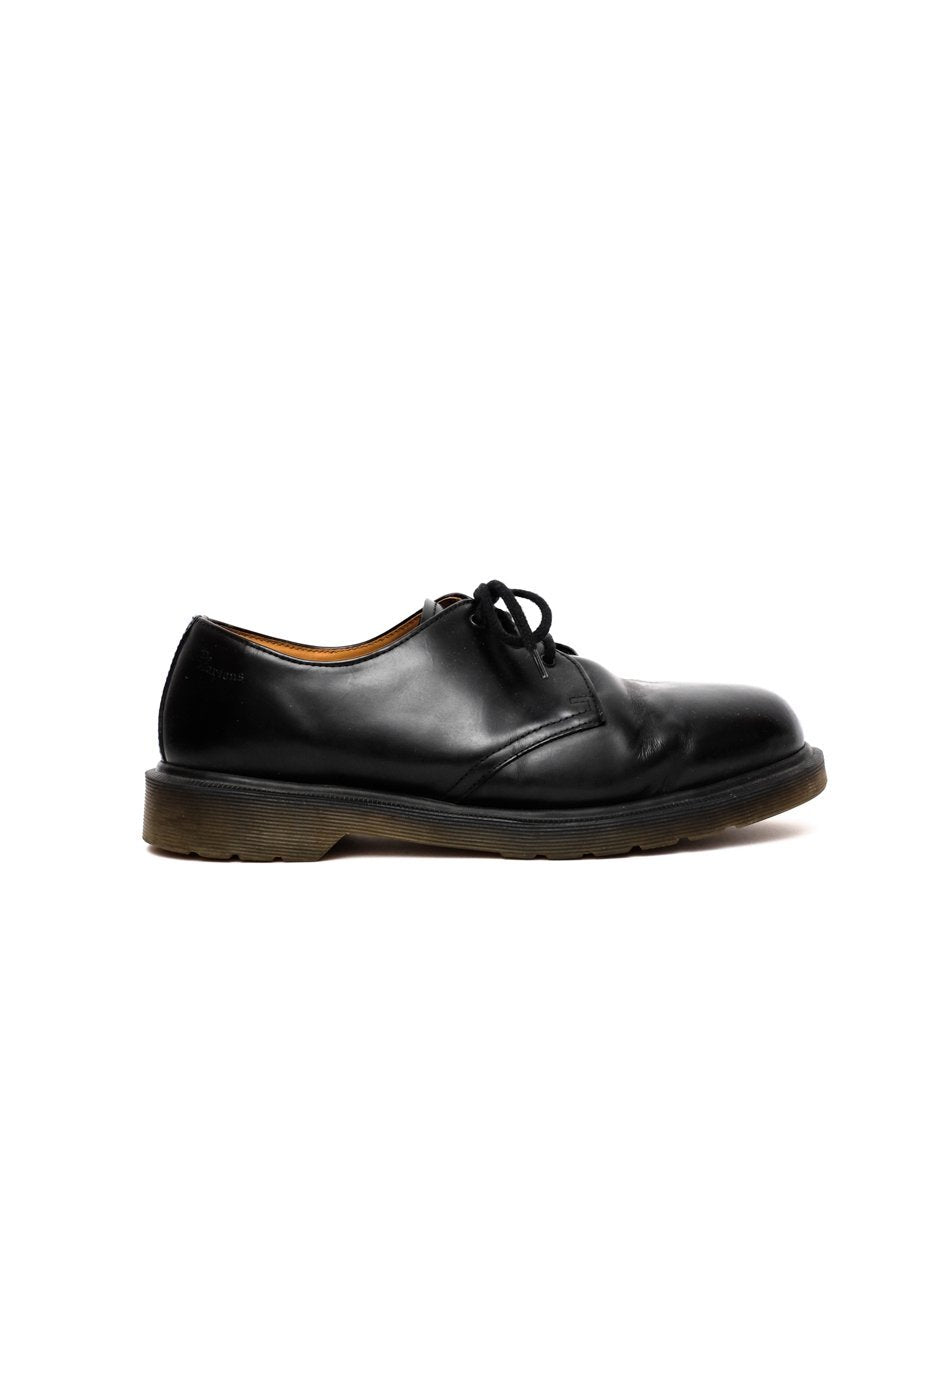 0525_DOC MARTENS 44 BLACK BROGUES